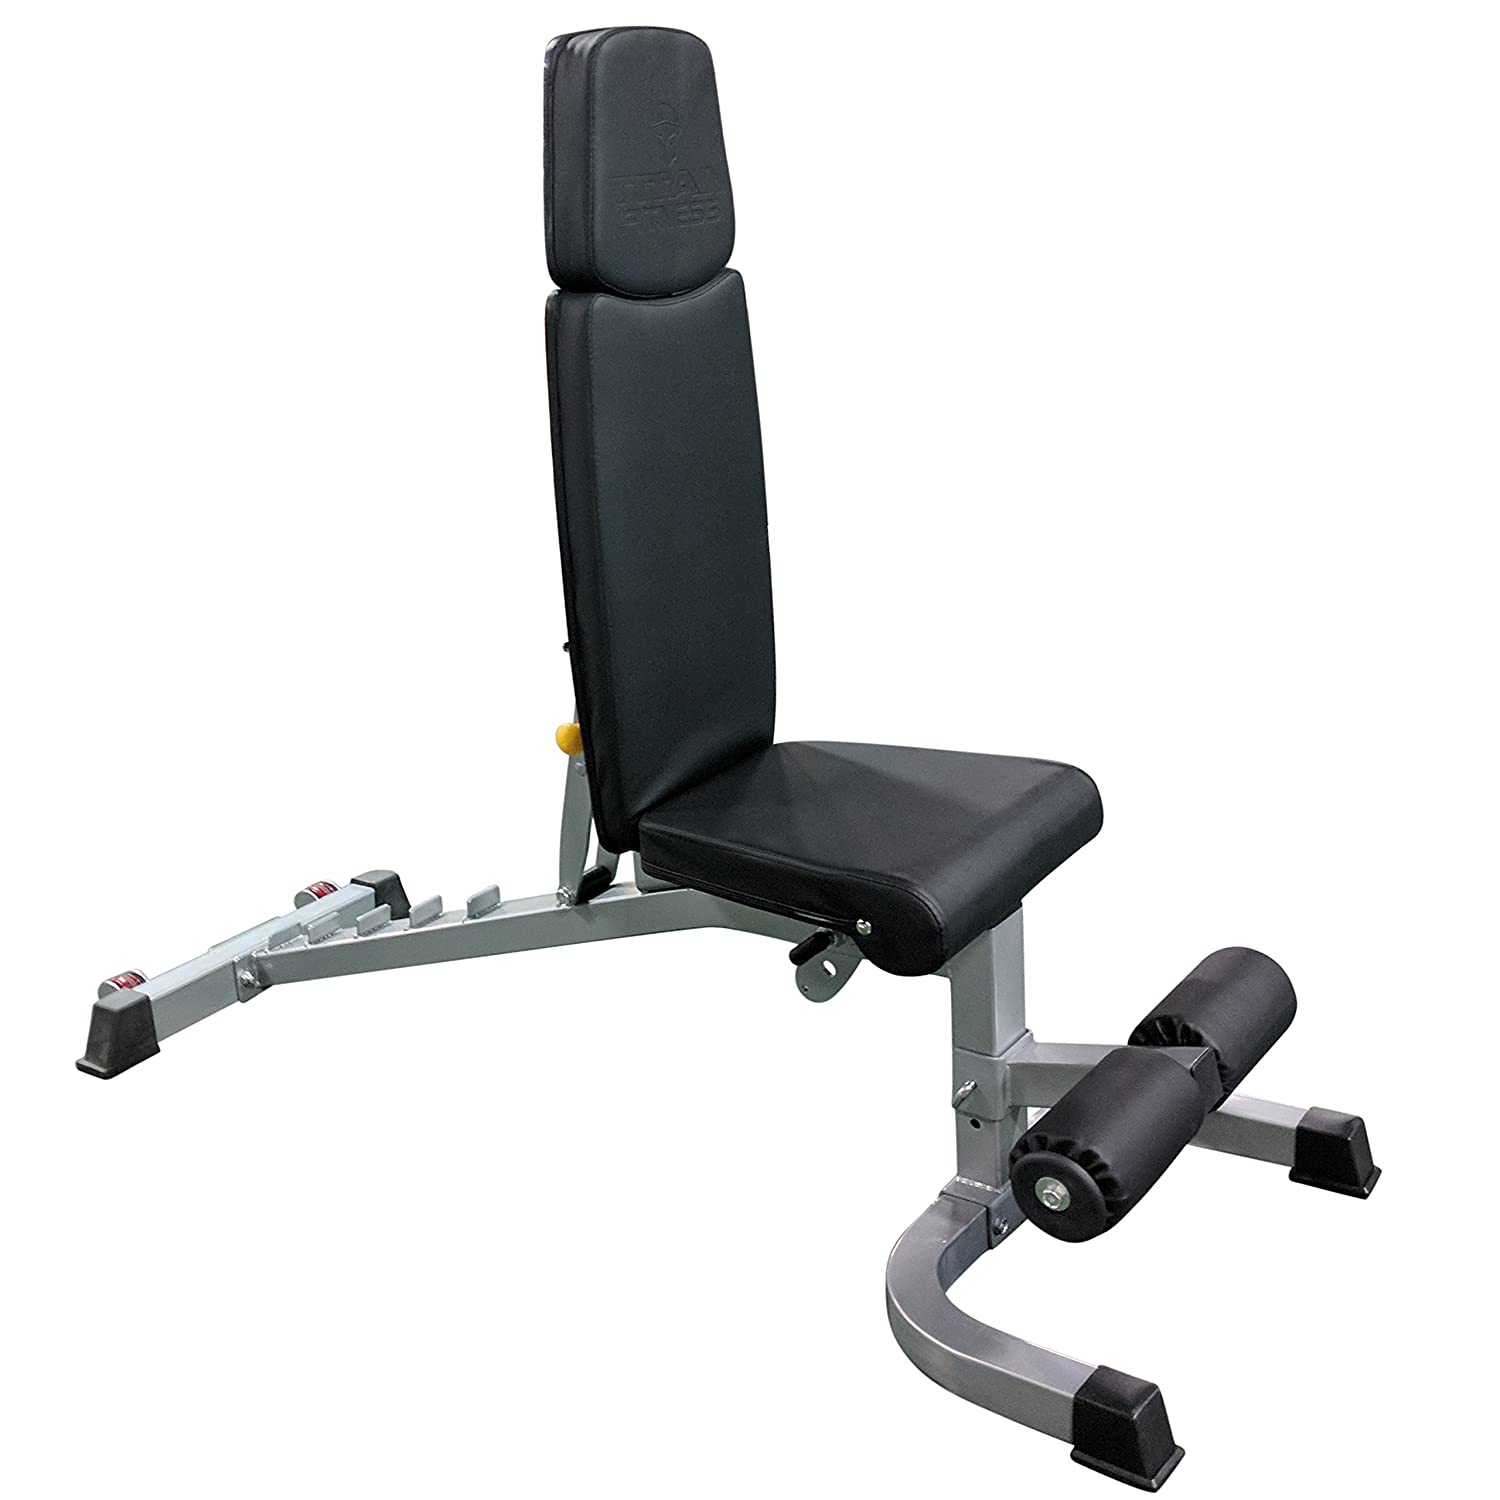 Inexpensive Weight Bench Sets Best Weight Bench Under 300 U2013 Ironmaster Super Bench Top